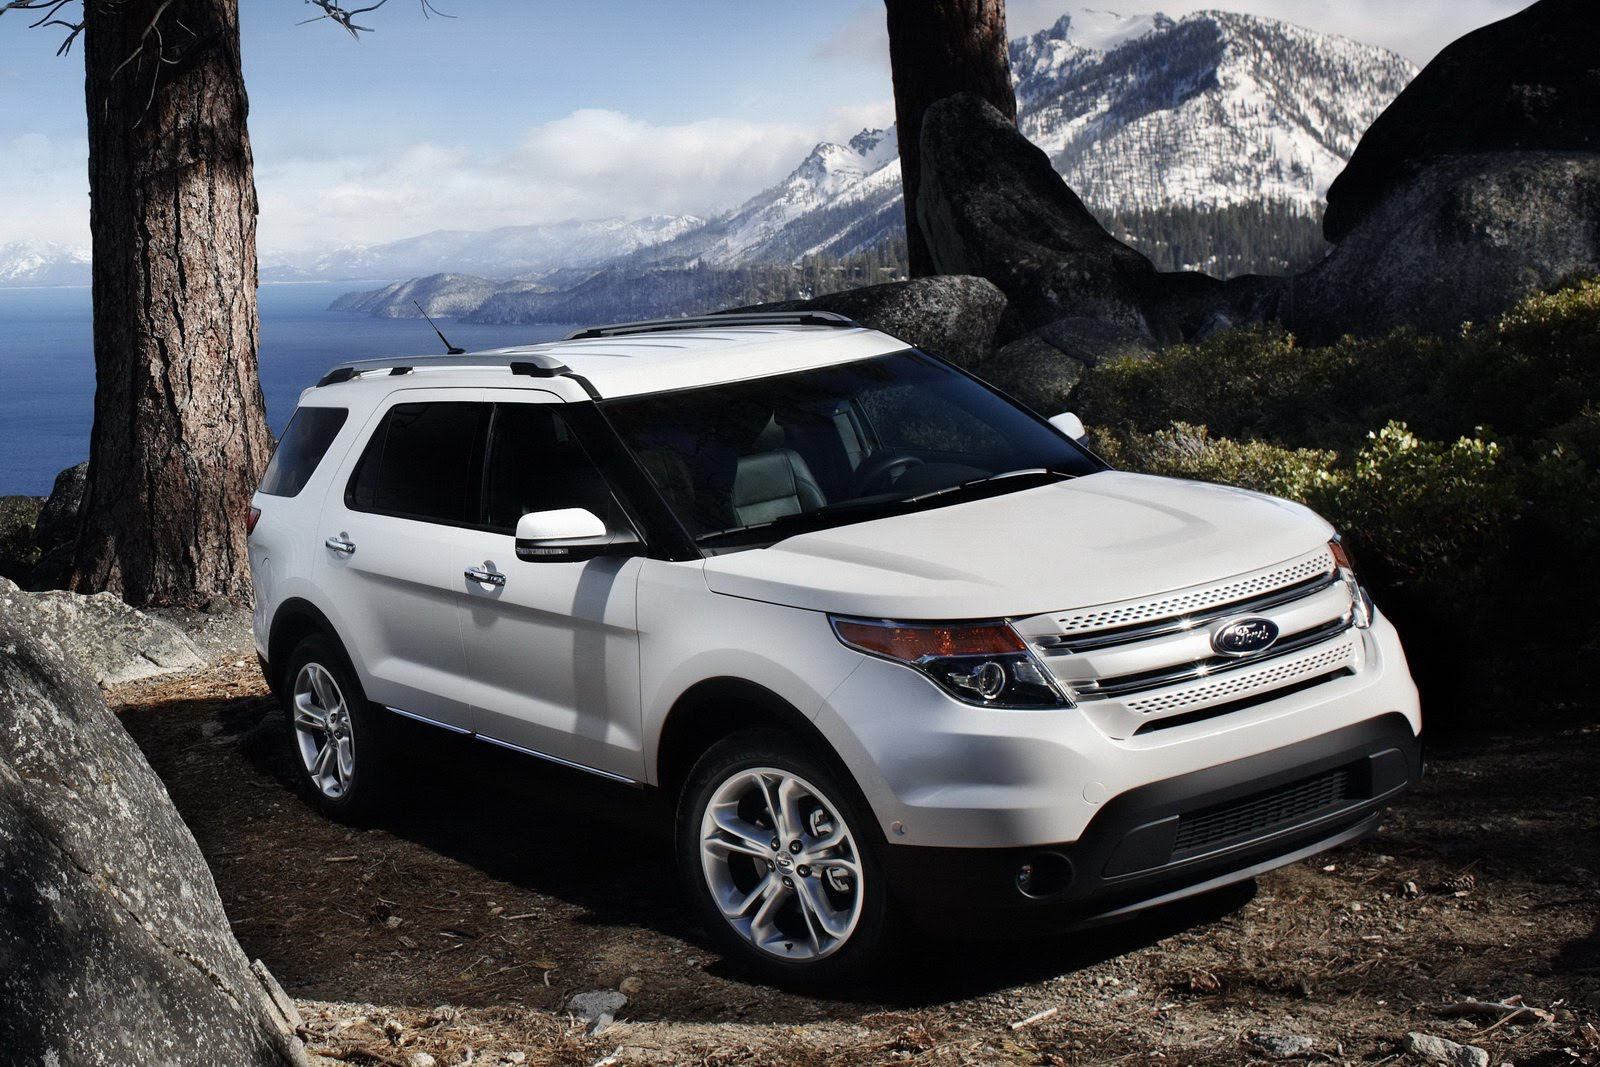 2011 ford explorer suv photos price reviews specifications. Black Bedroom Furniture Sets. Home Design Ideas